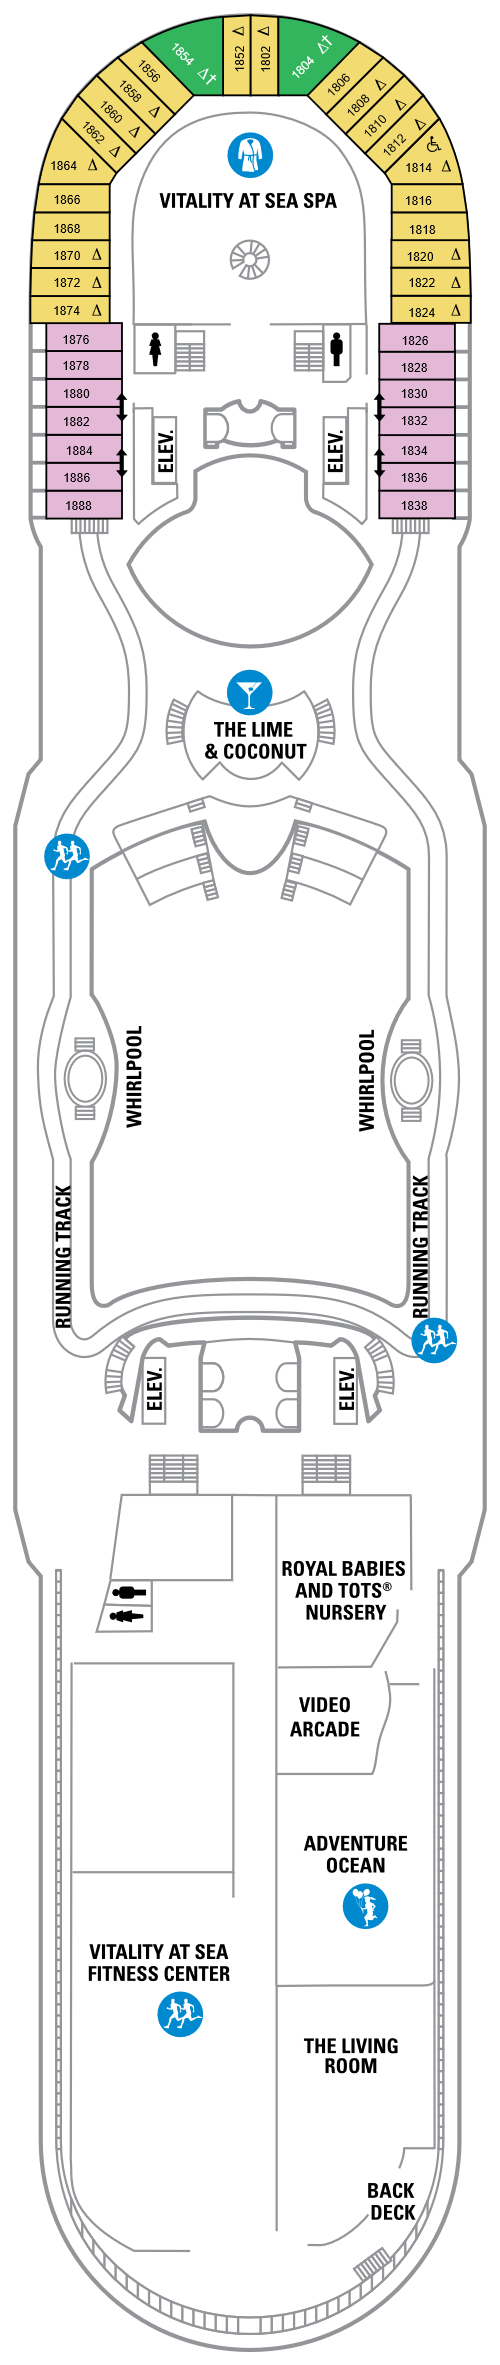 Navigator Of The Seas Deck 12 layout